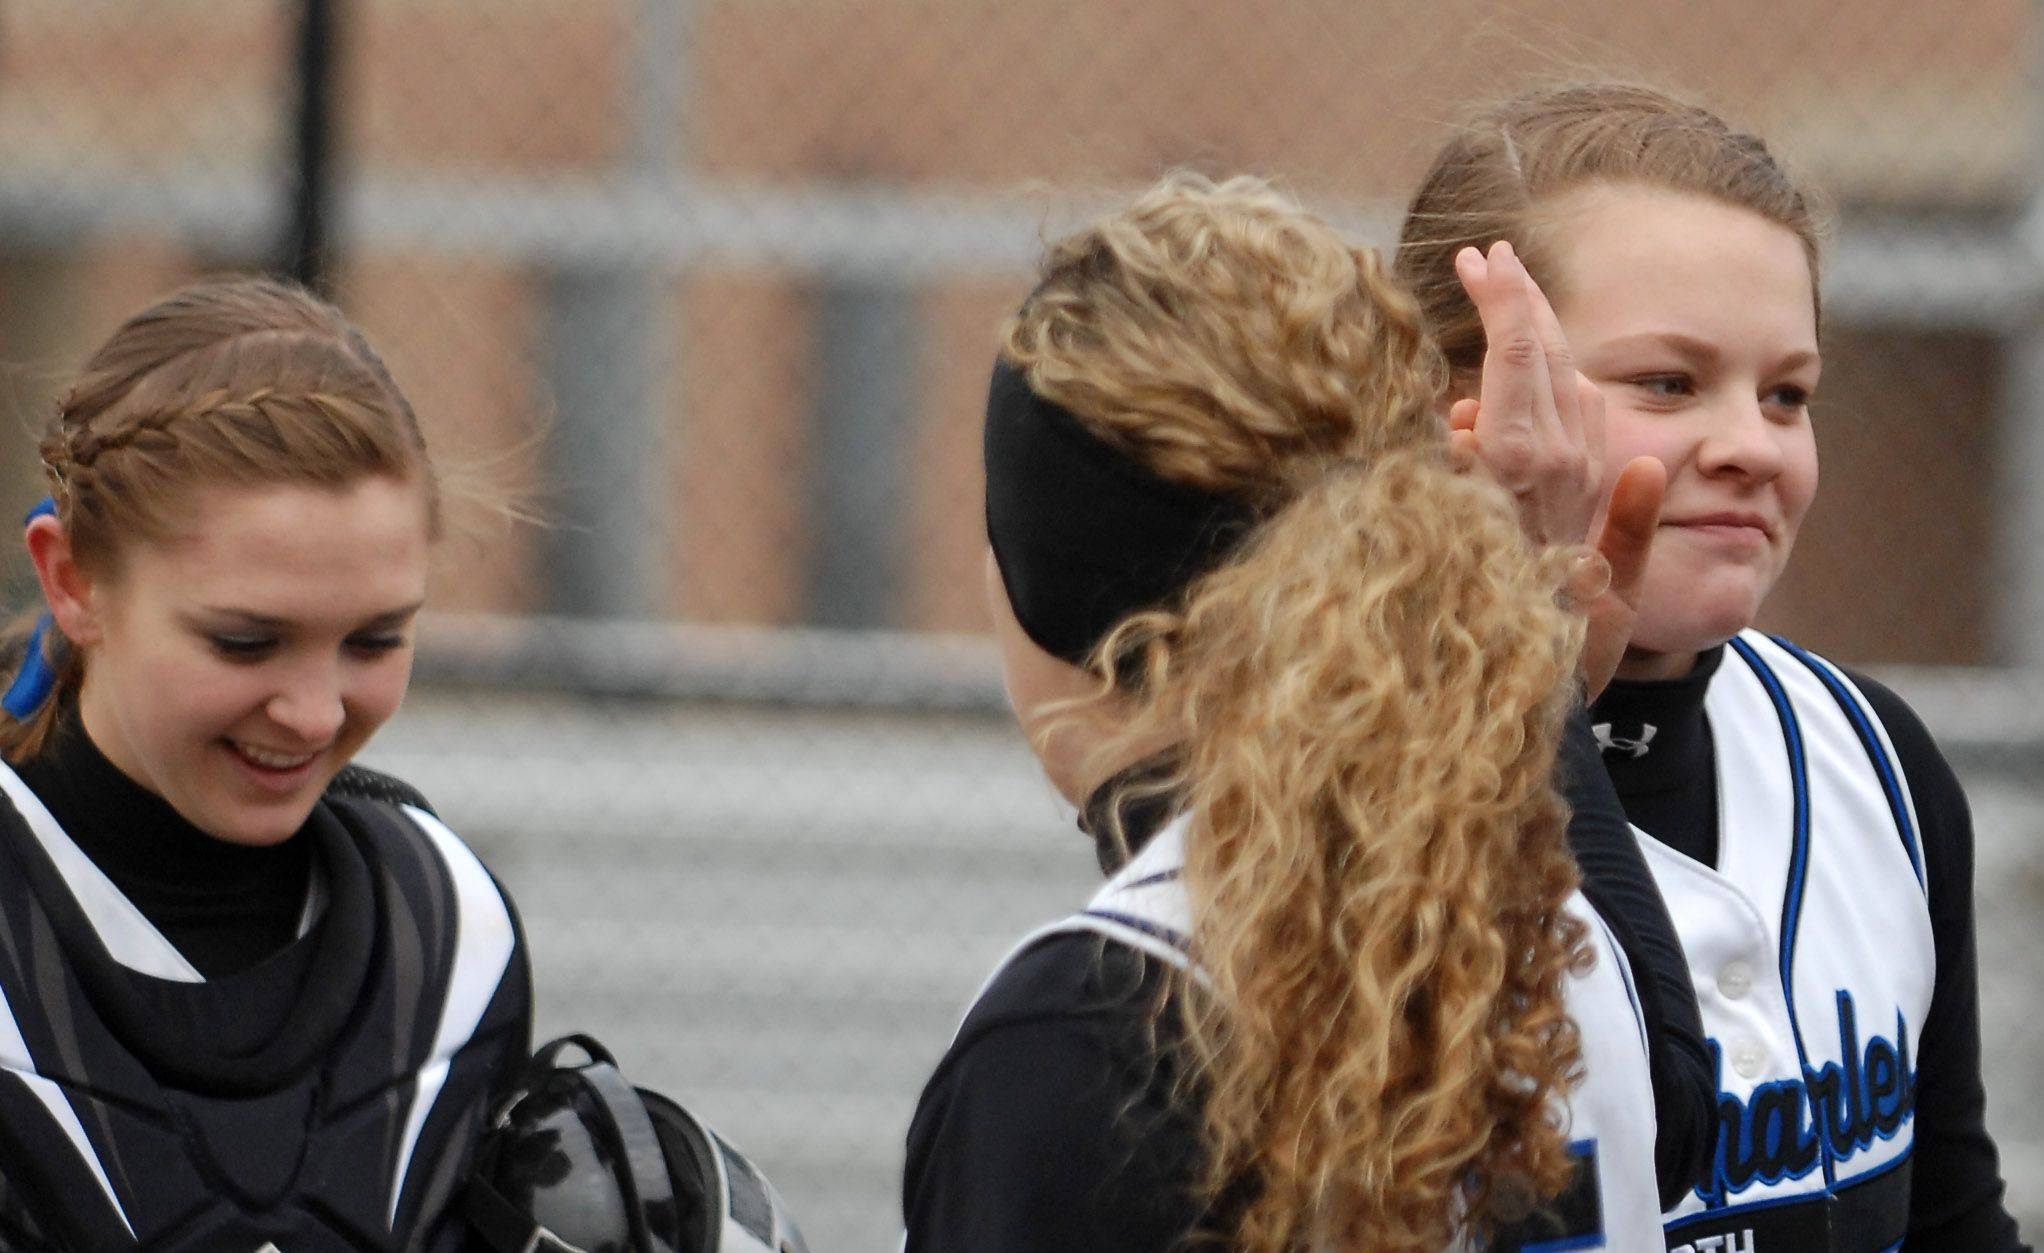 St. Charles North pitcher Amanda Ciran is congratulated after her first win of the year against Plainfield Central. She has 19 more since then and will put her 20-1 record on the line Thursday against Leyden in the sectional semifinals.